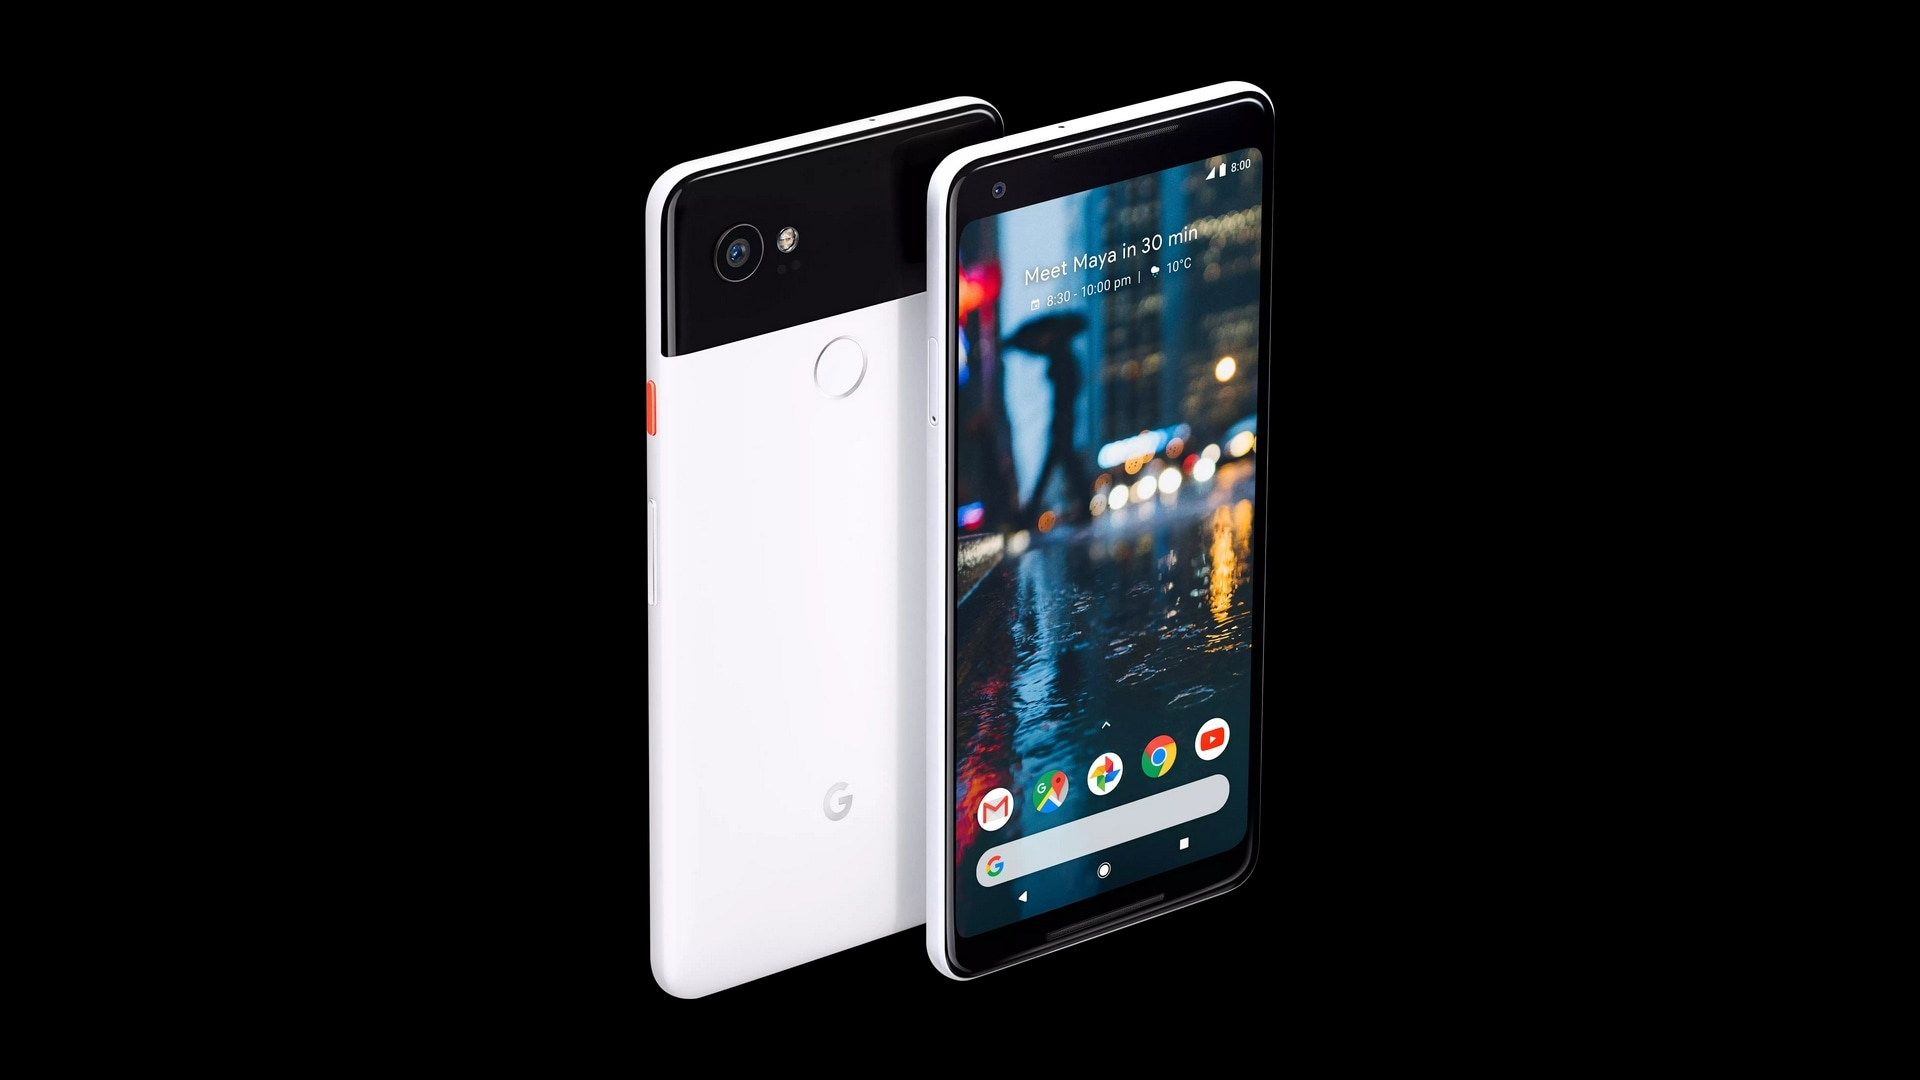 The Google Pixel 2 XL